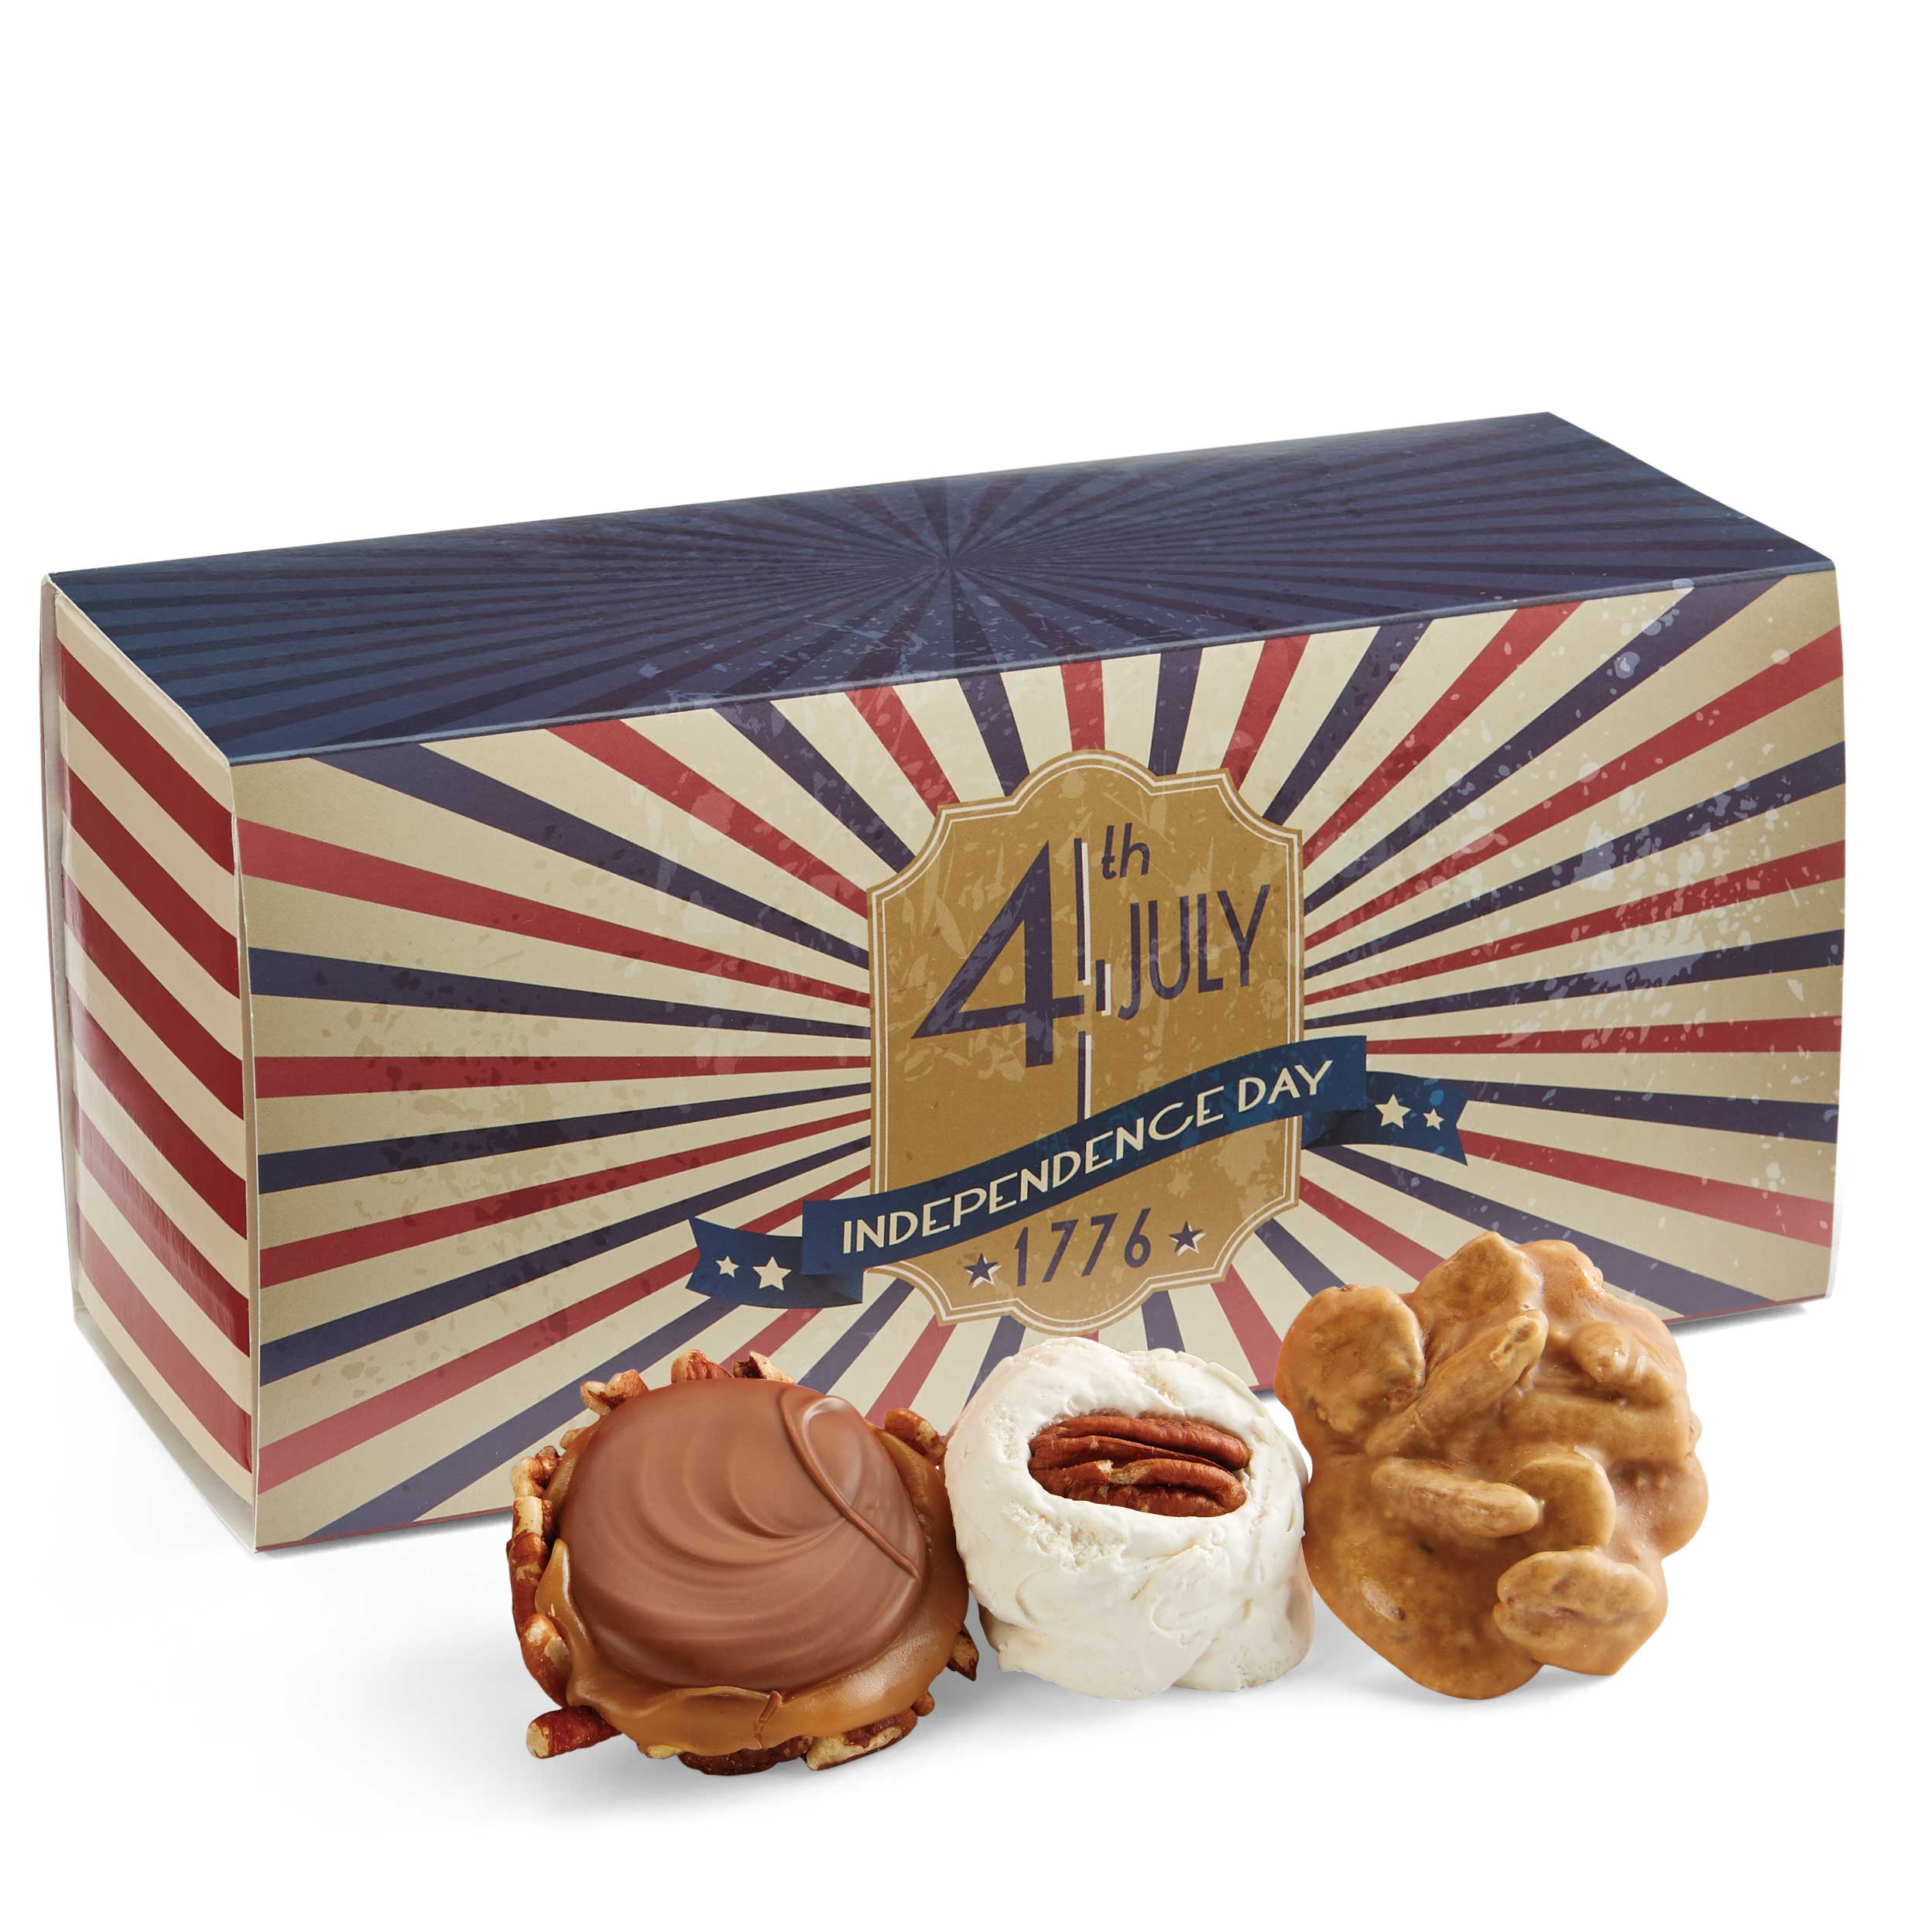 12 Piece Best Sellers Trio in the 4th of July Gift Box